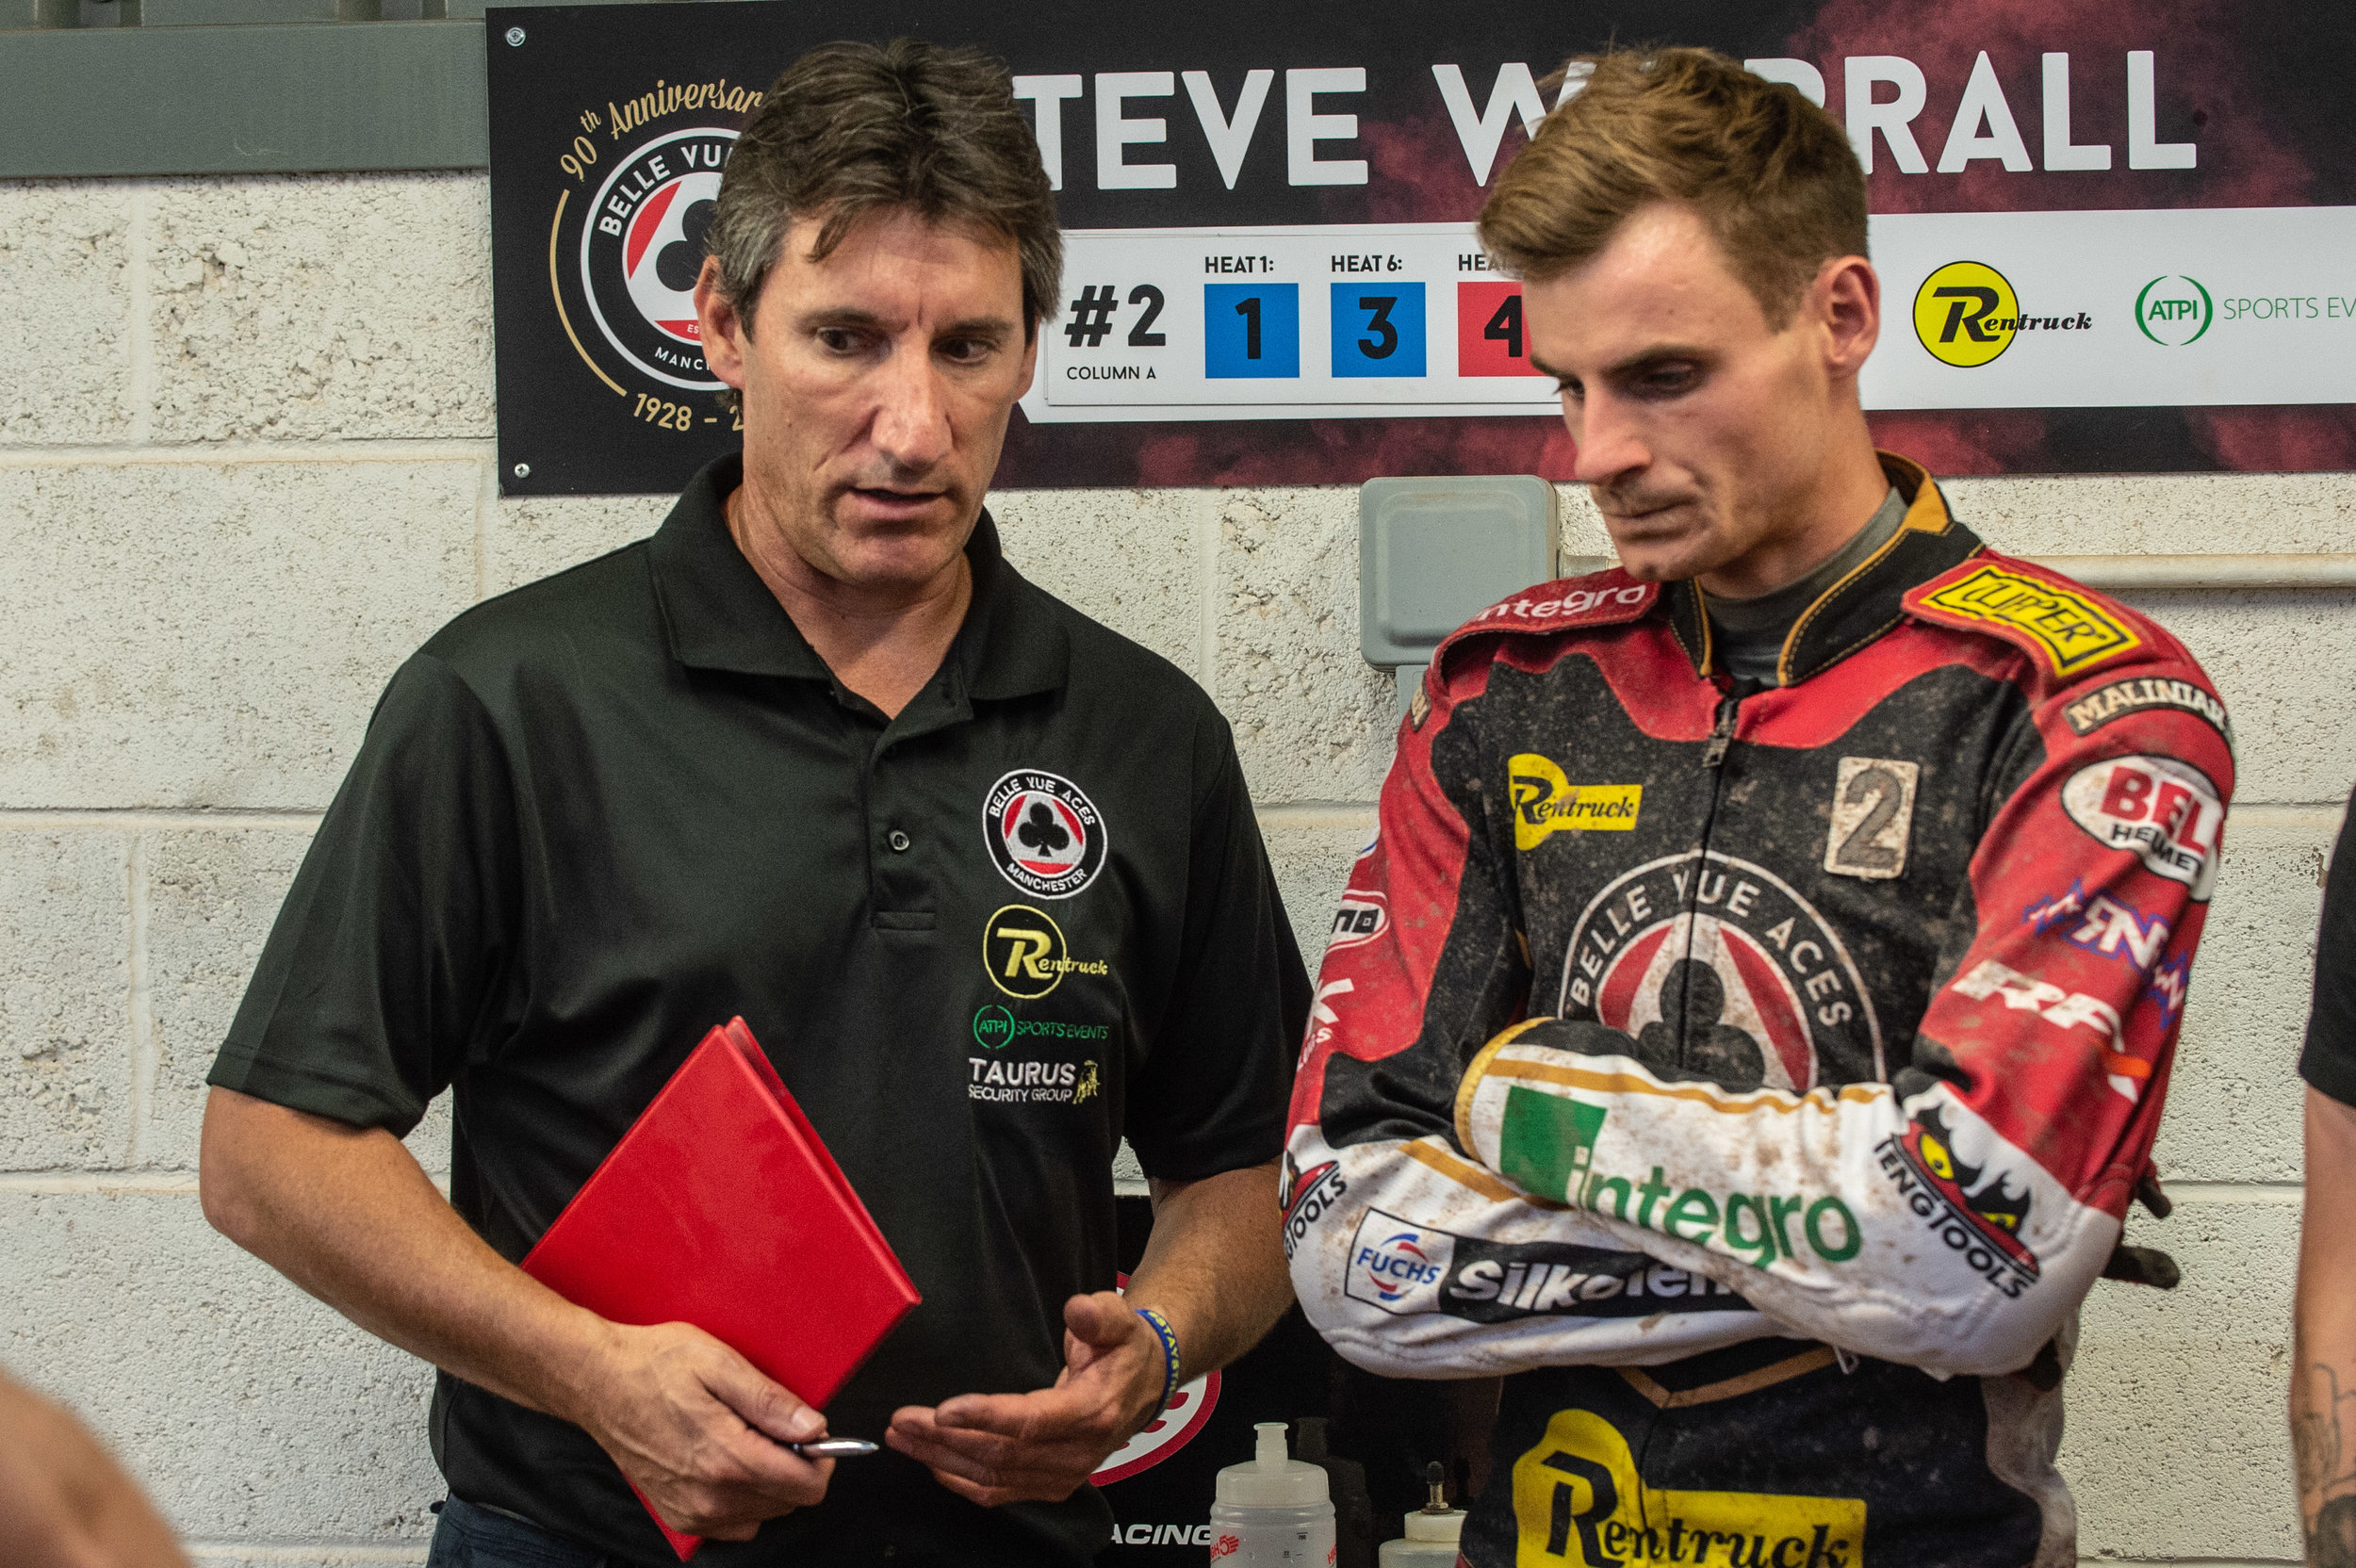 Steve Worrall confers with Rentruck Aces team boss Mark Lemon